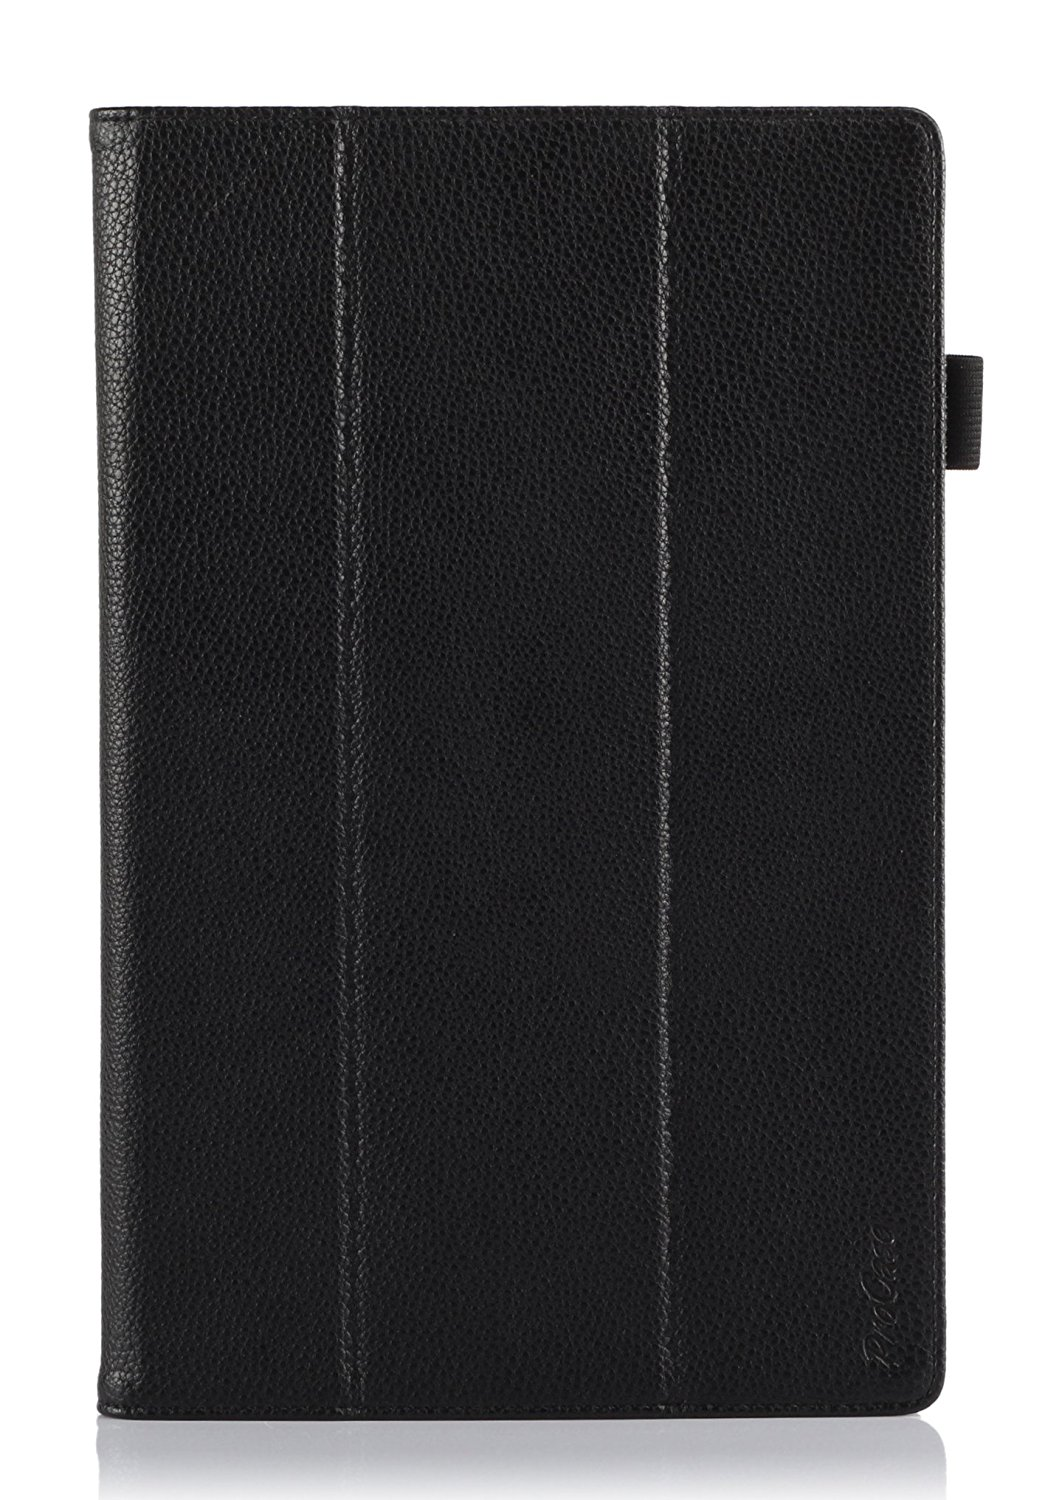 ProCase Microsoft Surface 2 Case - Tri-Fold Leather Case Cover for Microsoft Surface 2 and Surface RT Tablet (NOT for Surface Pro Tablet), built-in stand, elastic hand strap, and stylus loop (Black)